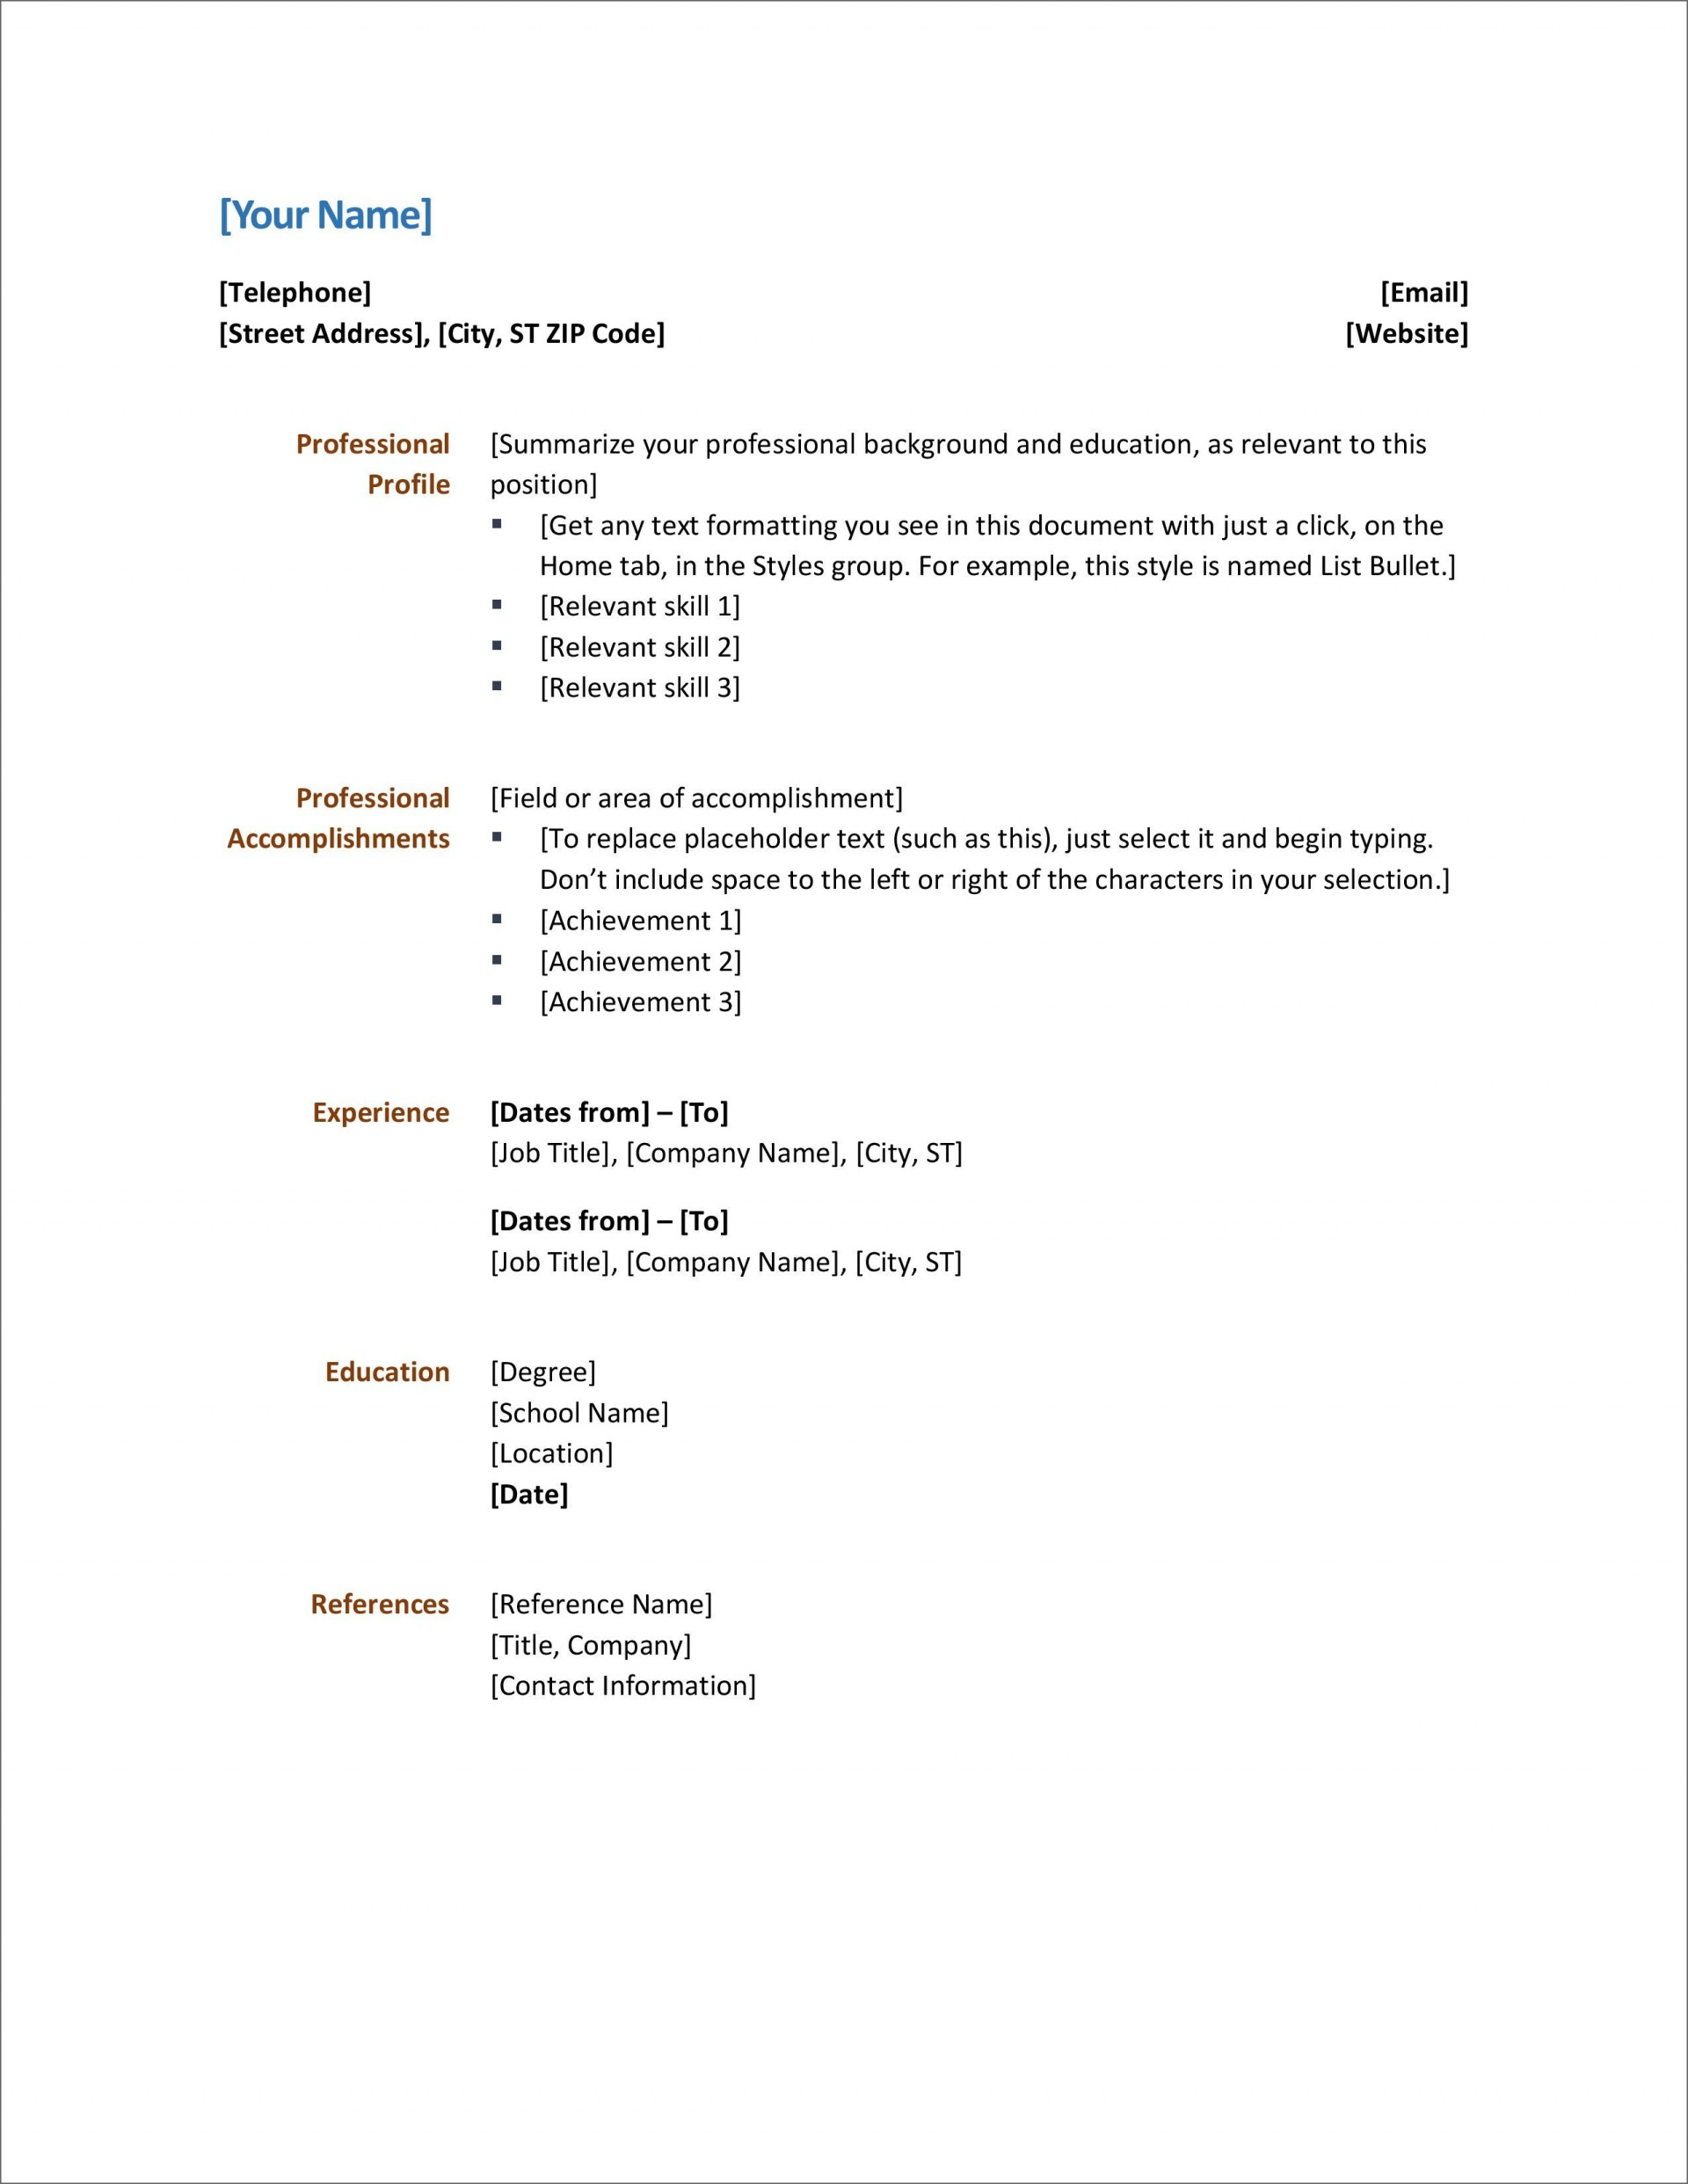 003 Amazing Microsoft Office Template Resume Picture  Word 2007 M Cv Free Download1920